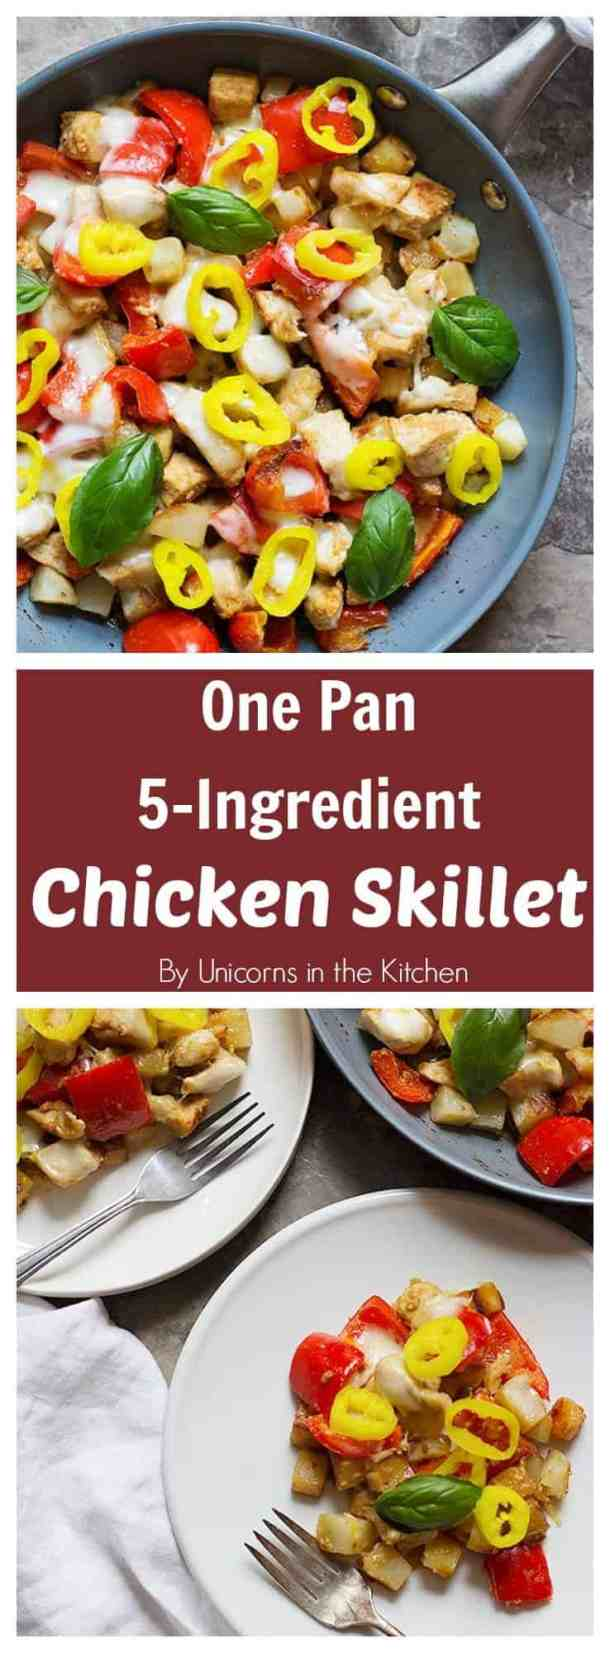 This one pan 5-ingredient chicken skillet is perfect for weeknight dinners as it comes together in 30 minutes. The final addition of pepper rings gives a bold flavor to the dish!#chickenrecipes #easyrecipes #quickrecipes